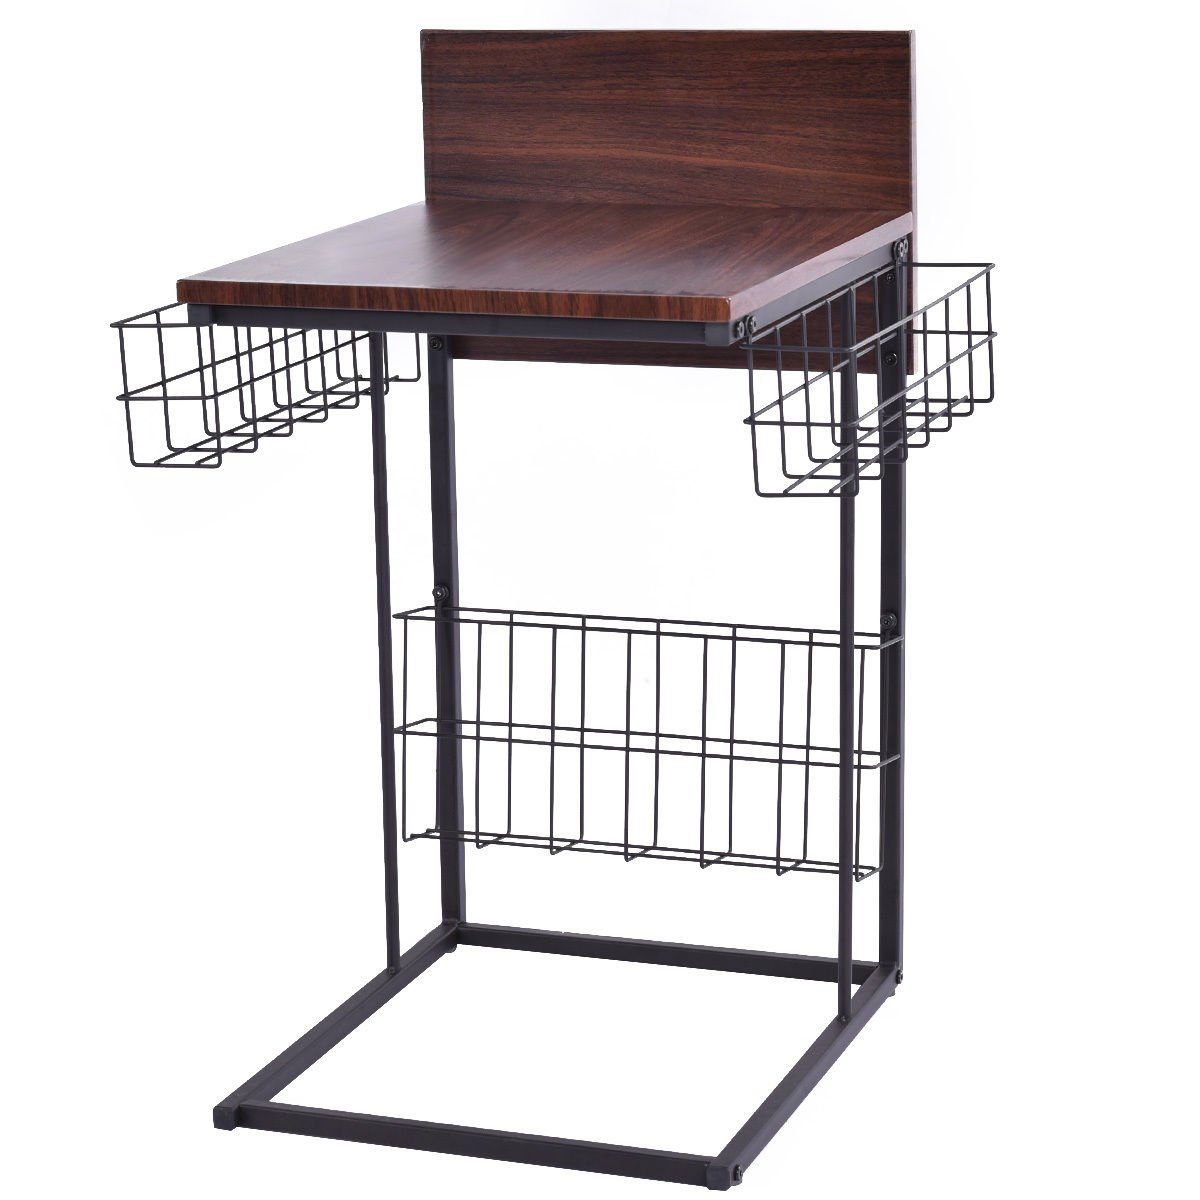 AK Energy Guest Reception Office Sofa Side Table Living Room Home Furniture Decor with Storage Basket